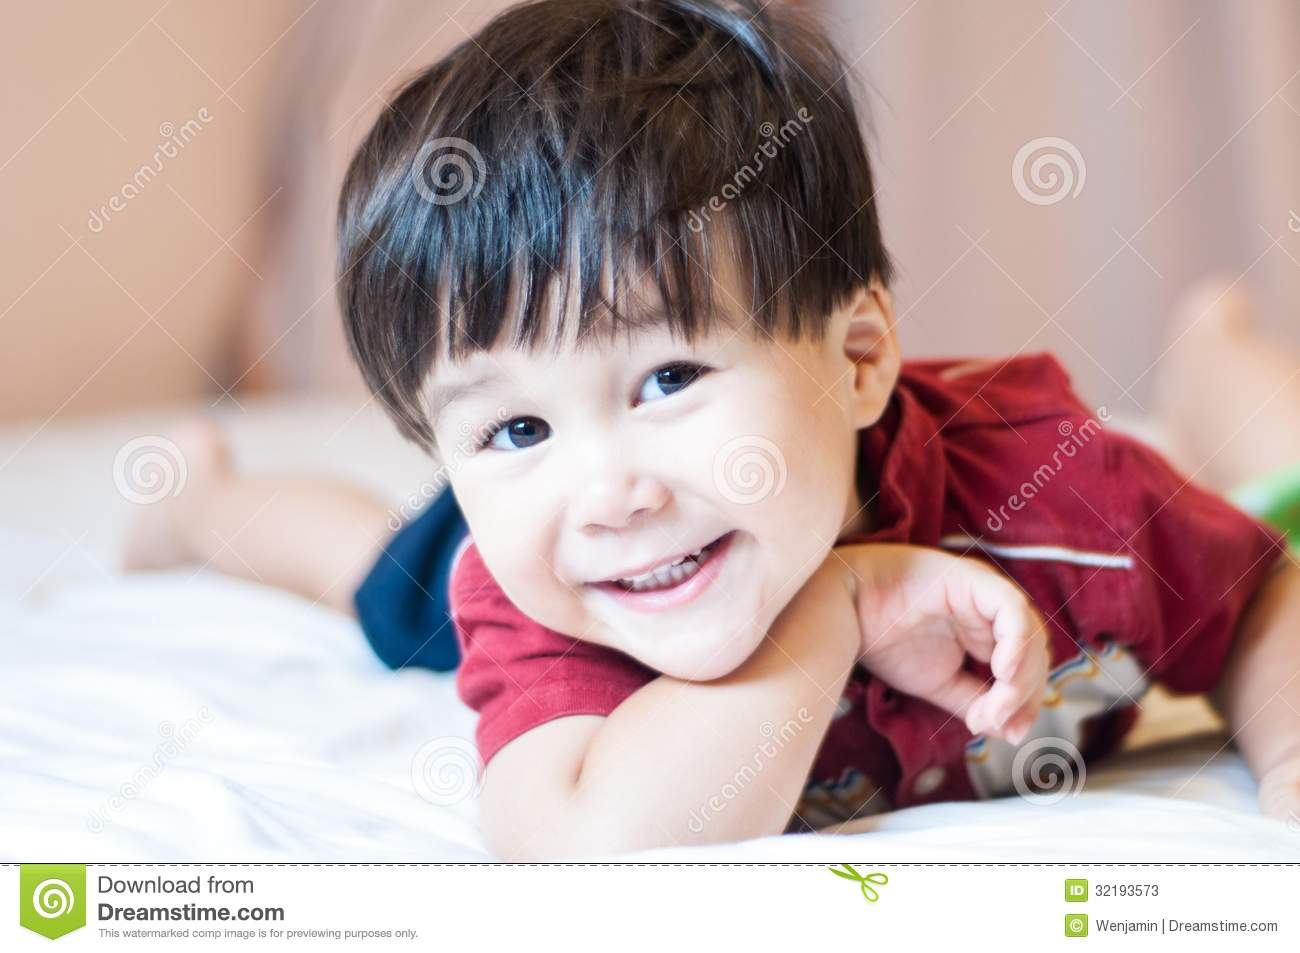 Eurasian Toddler Boy Smiling On A Bed Stock Photos